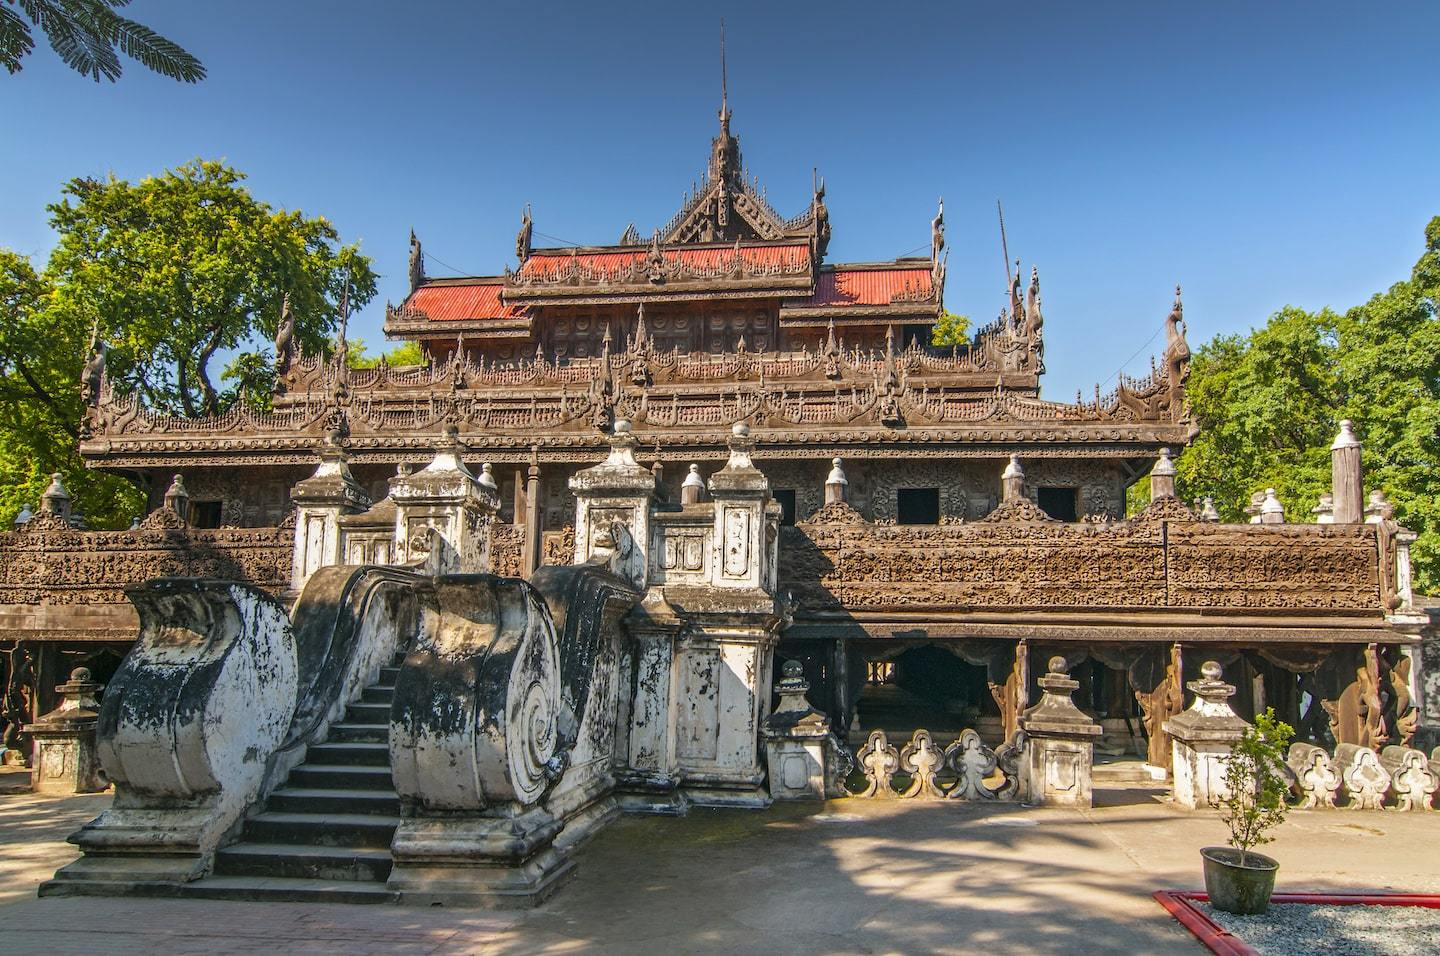 wooden monastery with statues in front and blue sky behind